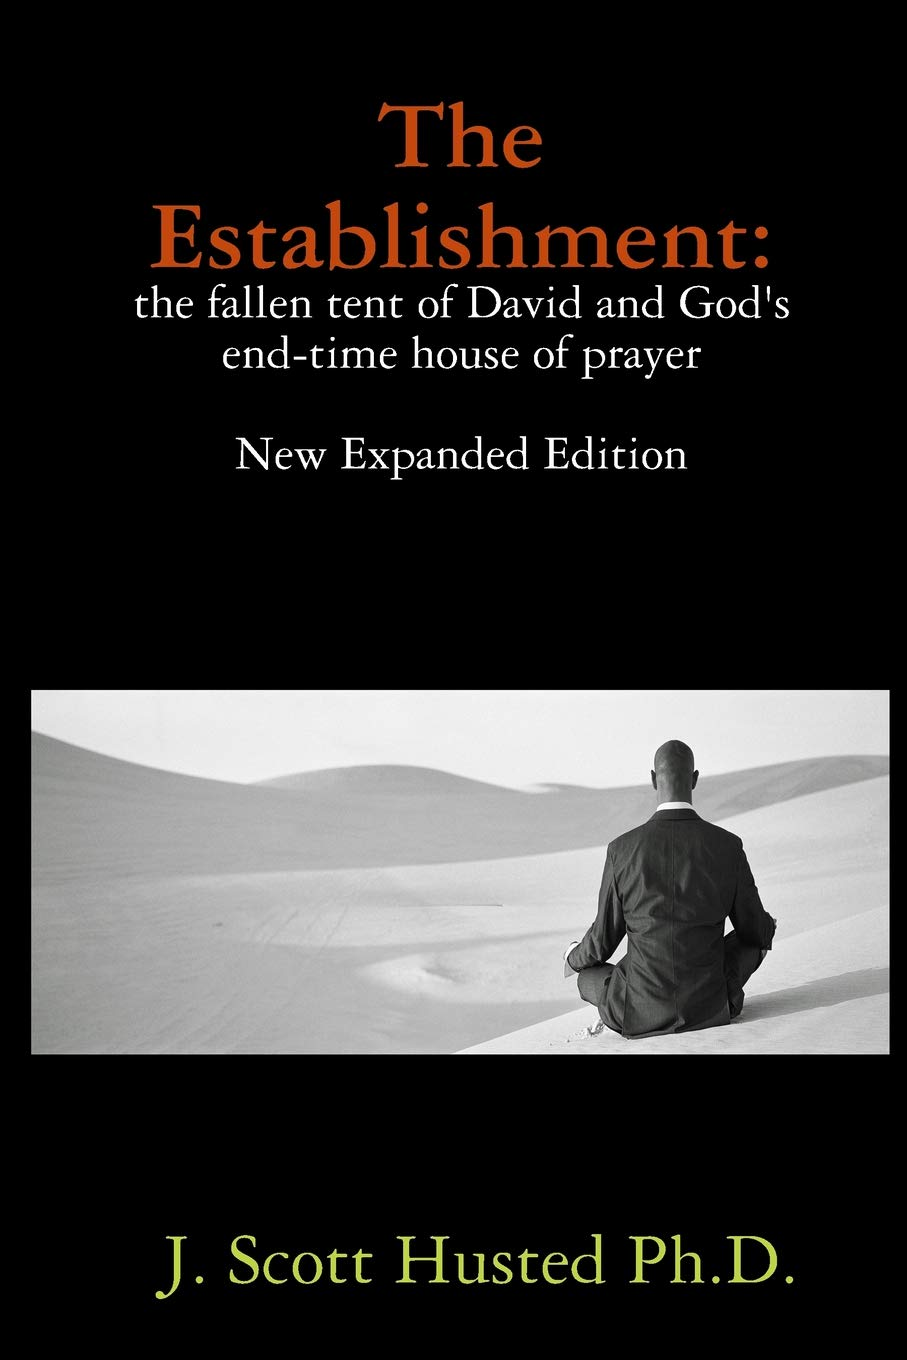 Download The Establishment: the fallen tent of David and God's end-time house of prayer ebook